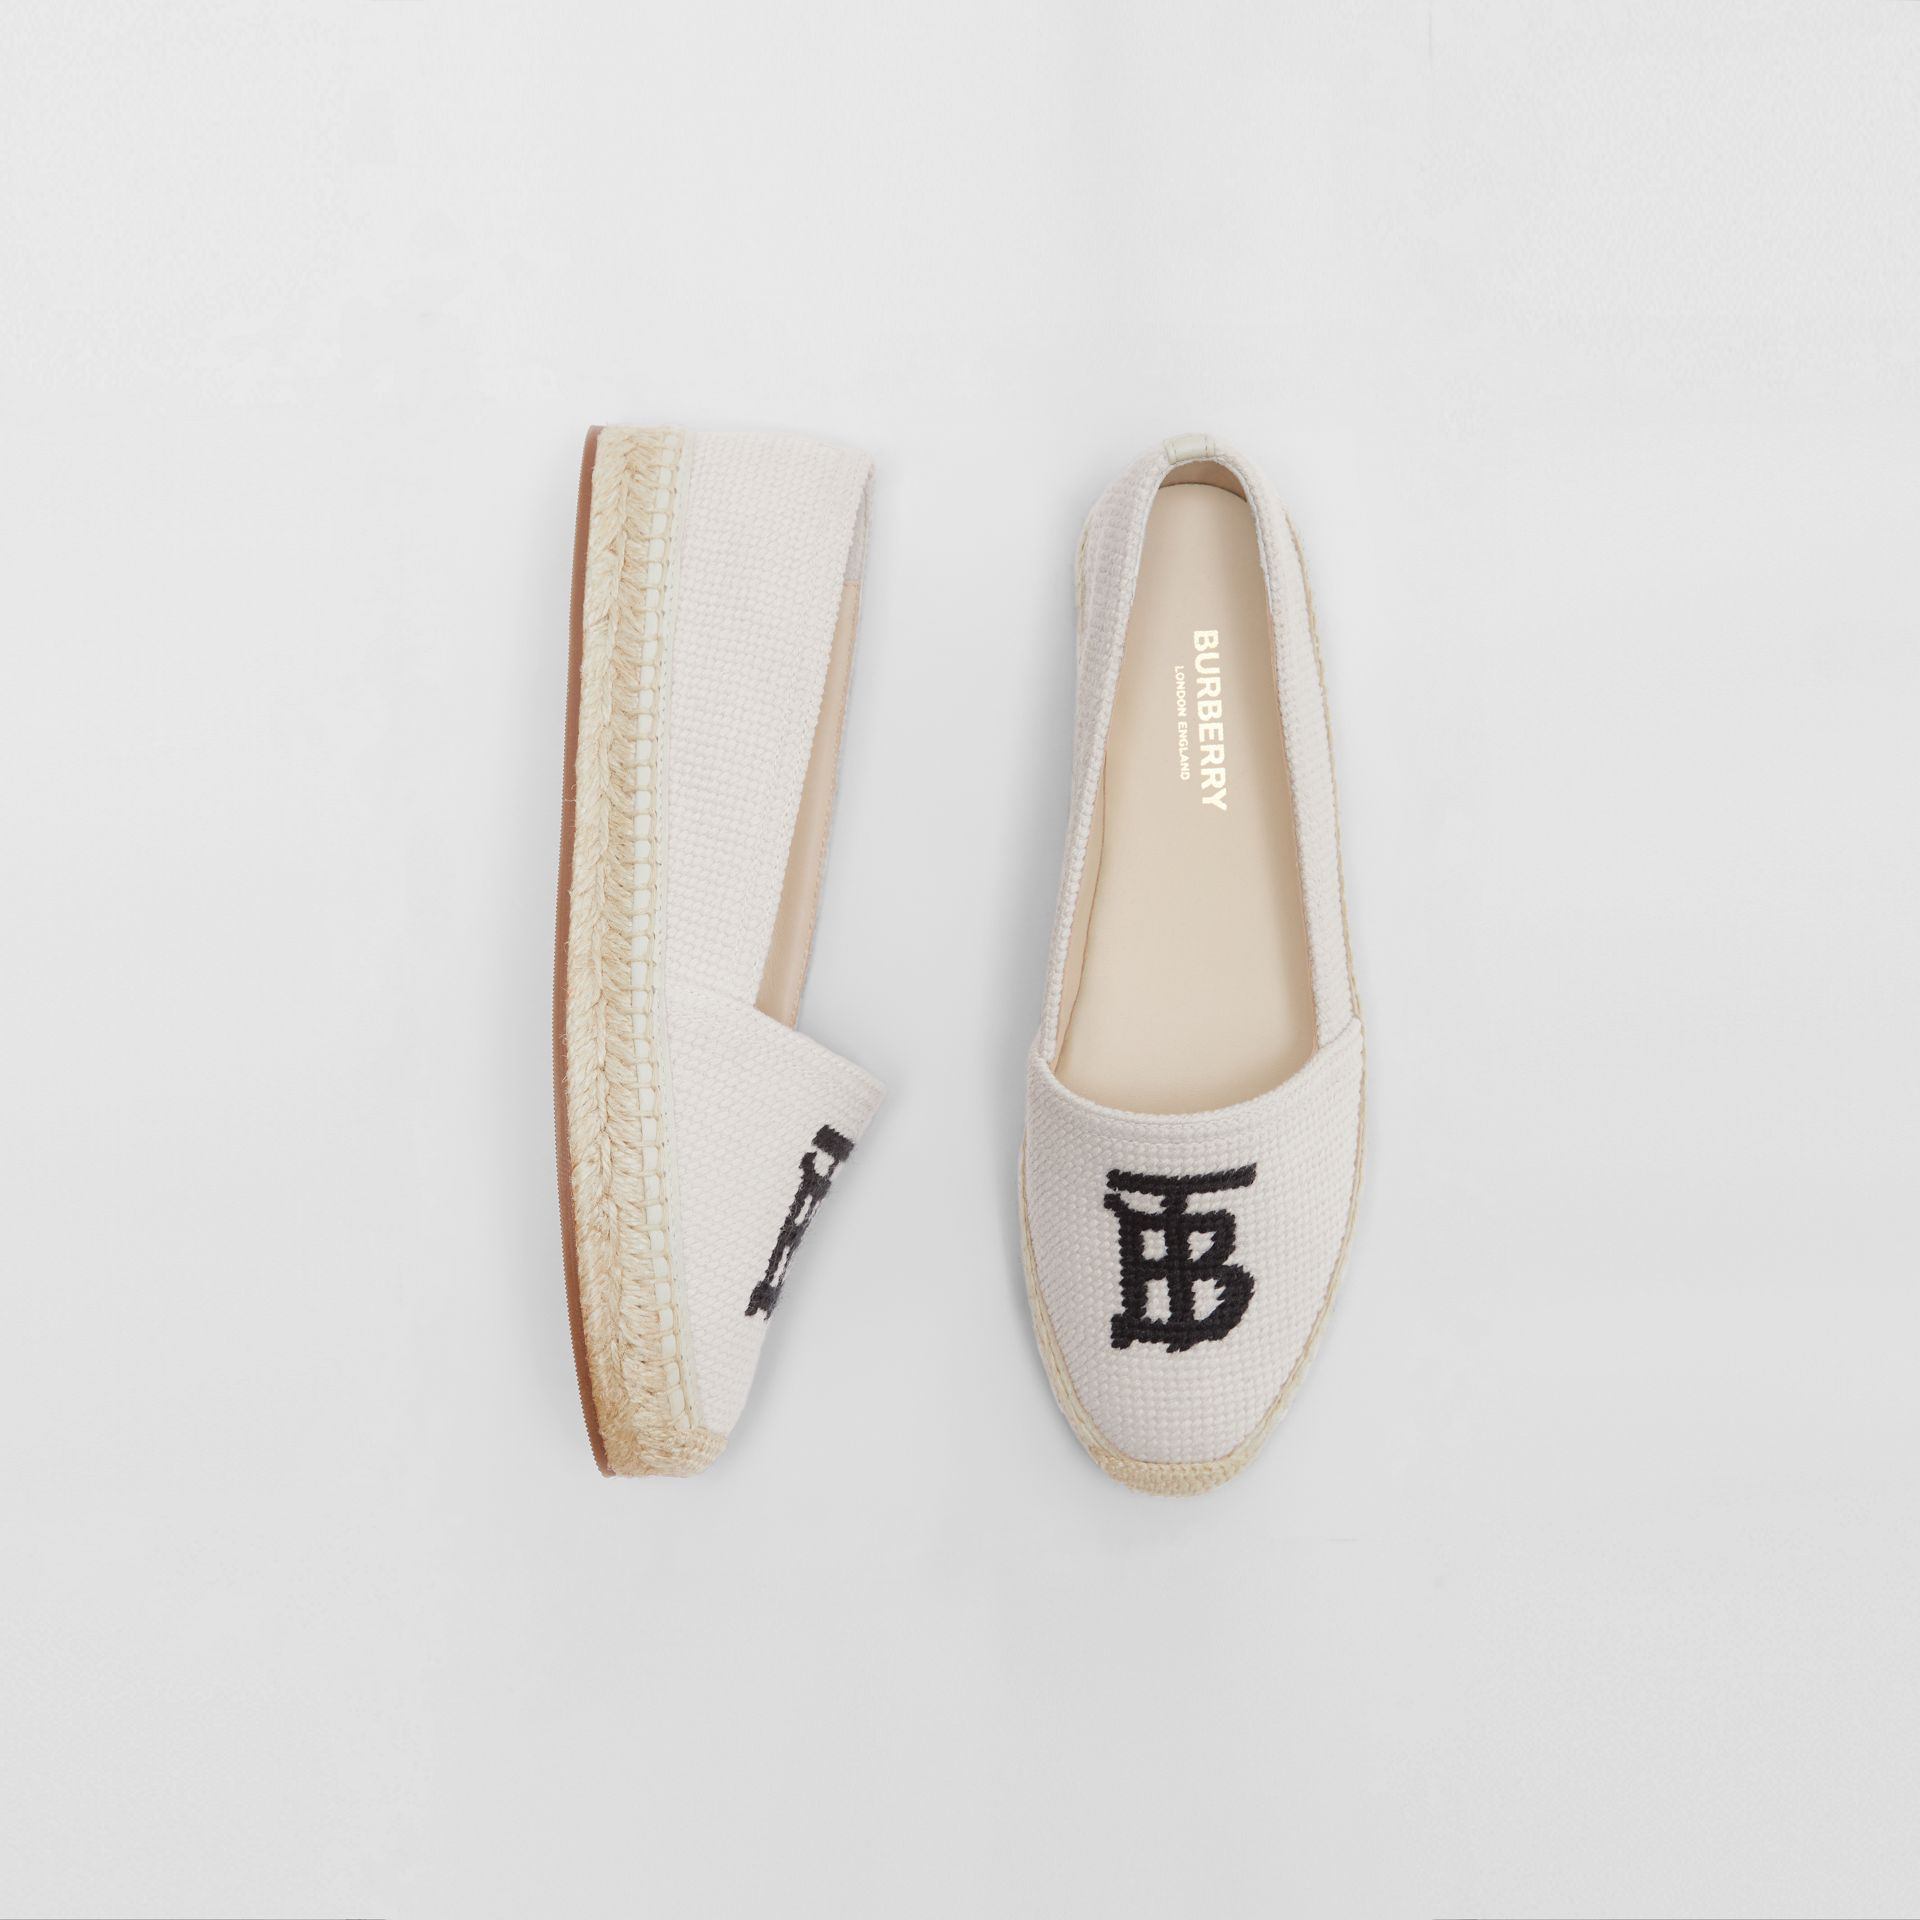 Monogram Motif Cotton and Leather Espadrilles in Ecru/black - Women | Burberry - gallery image 0